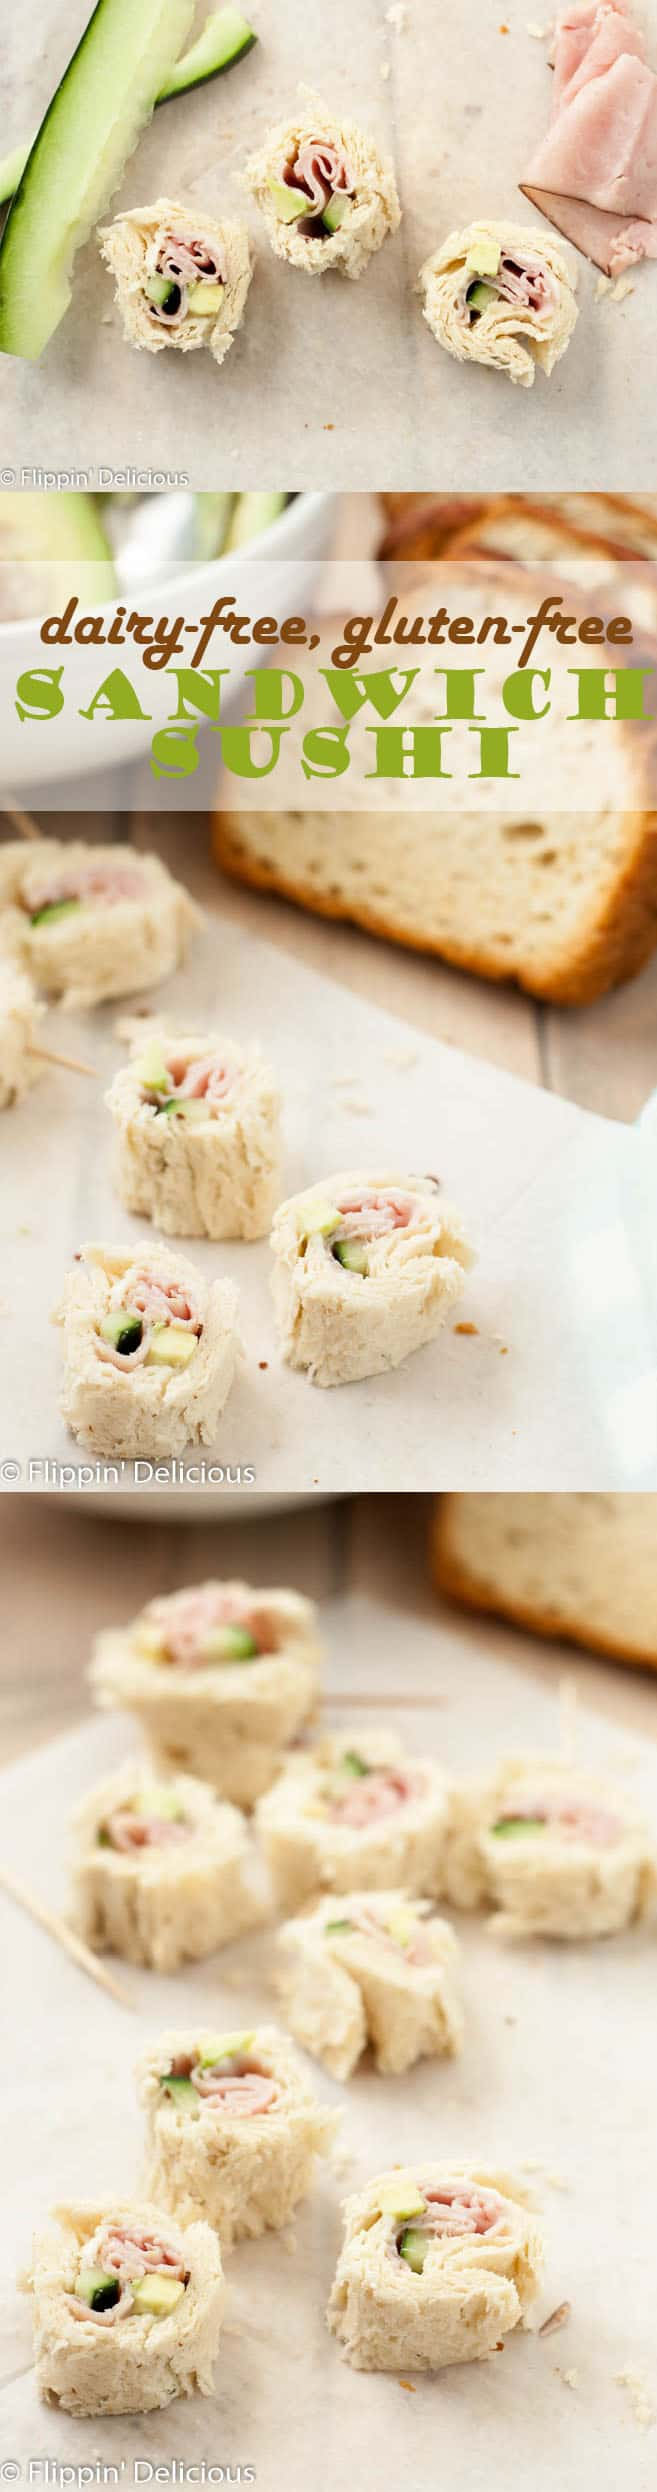 Dairy Free Gluten Free Sandwich Sushi makes a fun and portable lunch that everyone can enjoy. Fill your GF sandwich sushi with your favorite fillings!